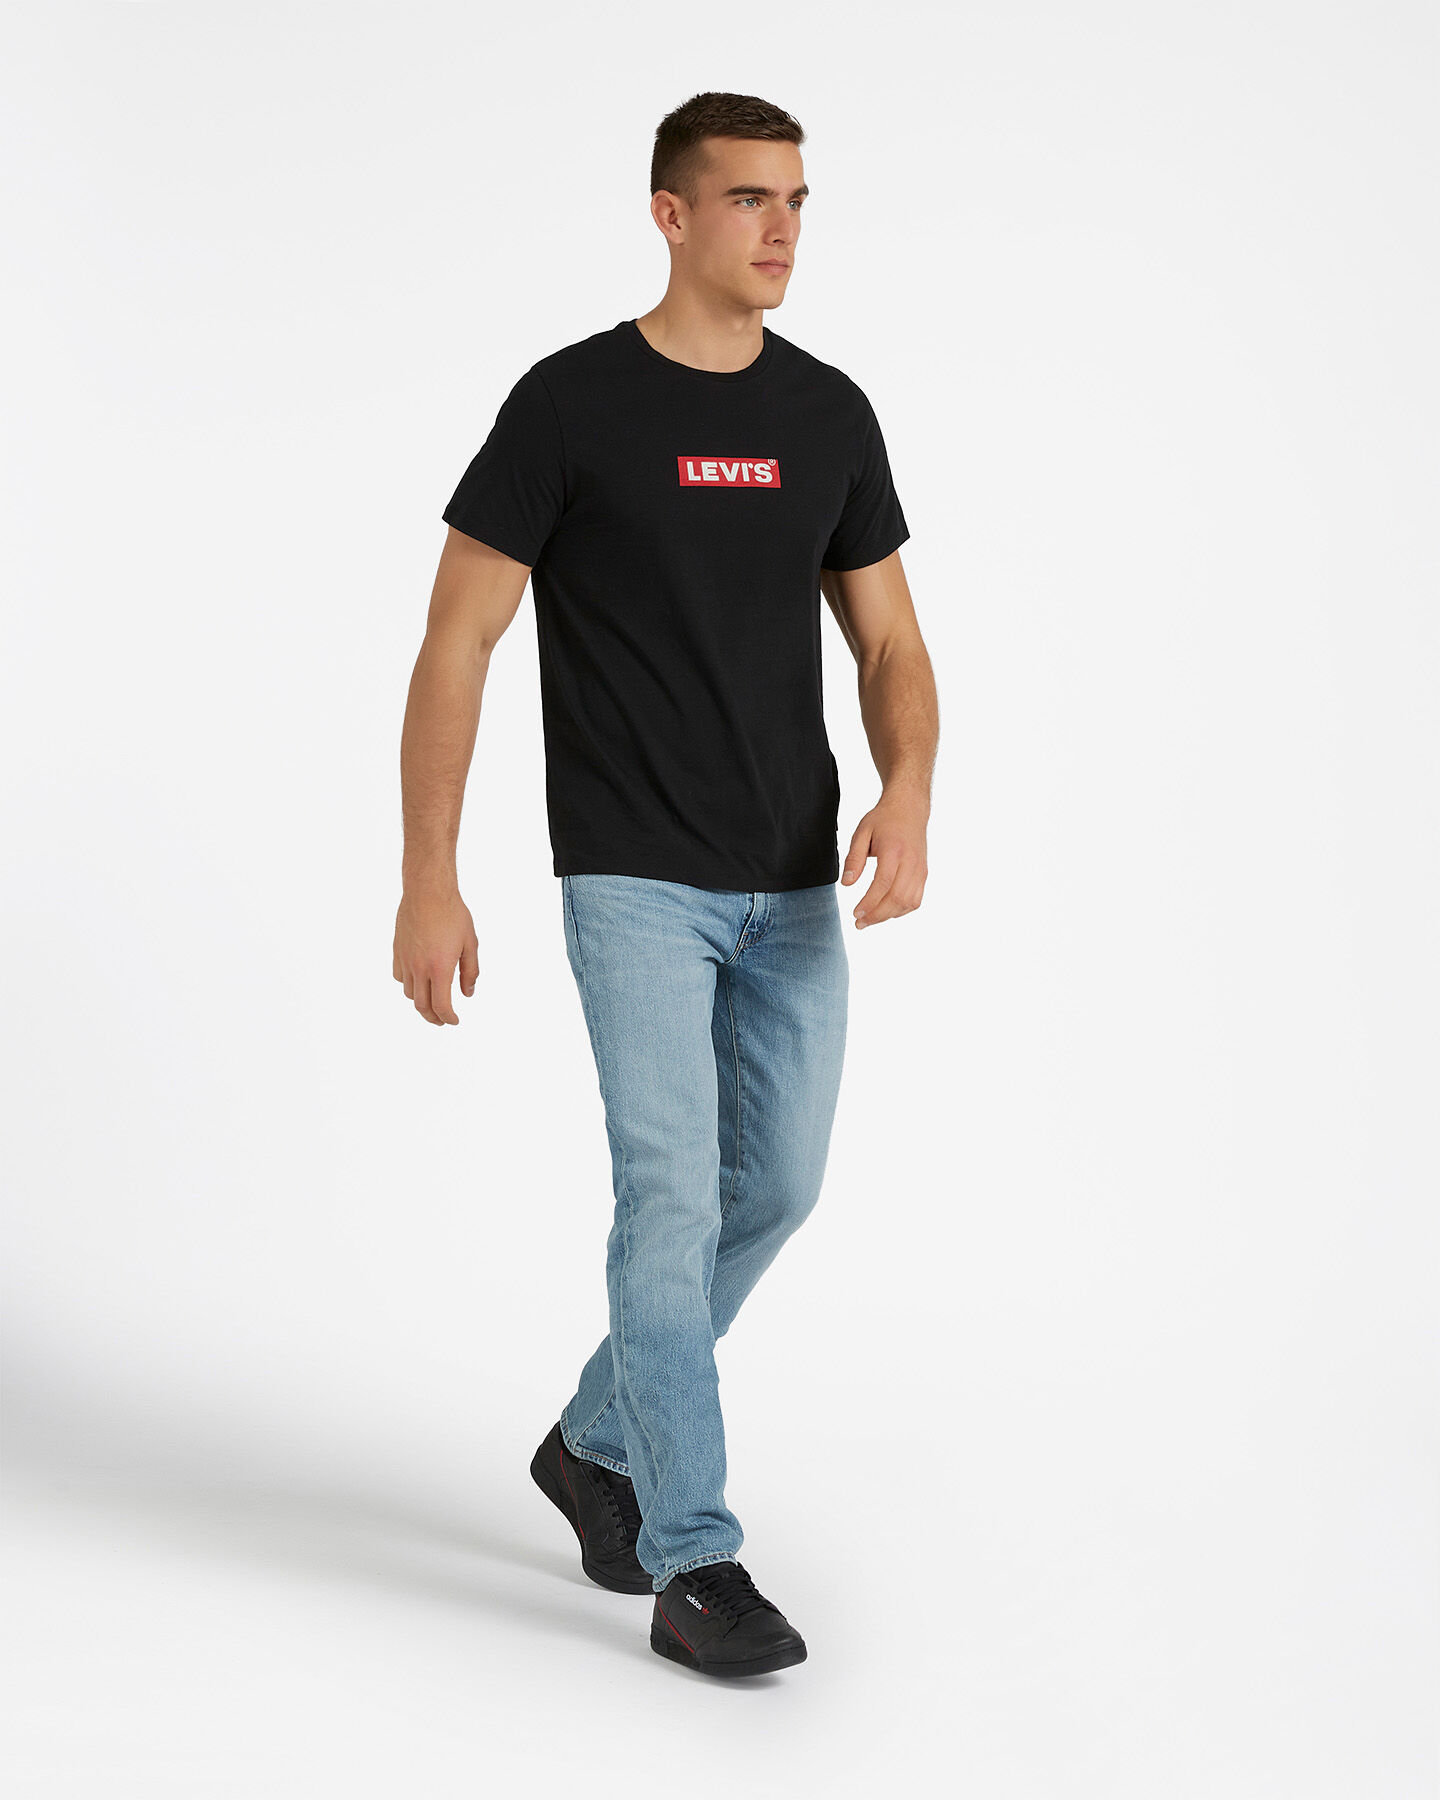 T-Shirt LEVI'S BOXTAB GRAPHIC M S4076920 scatto 3